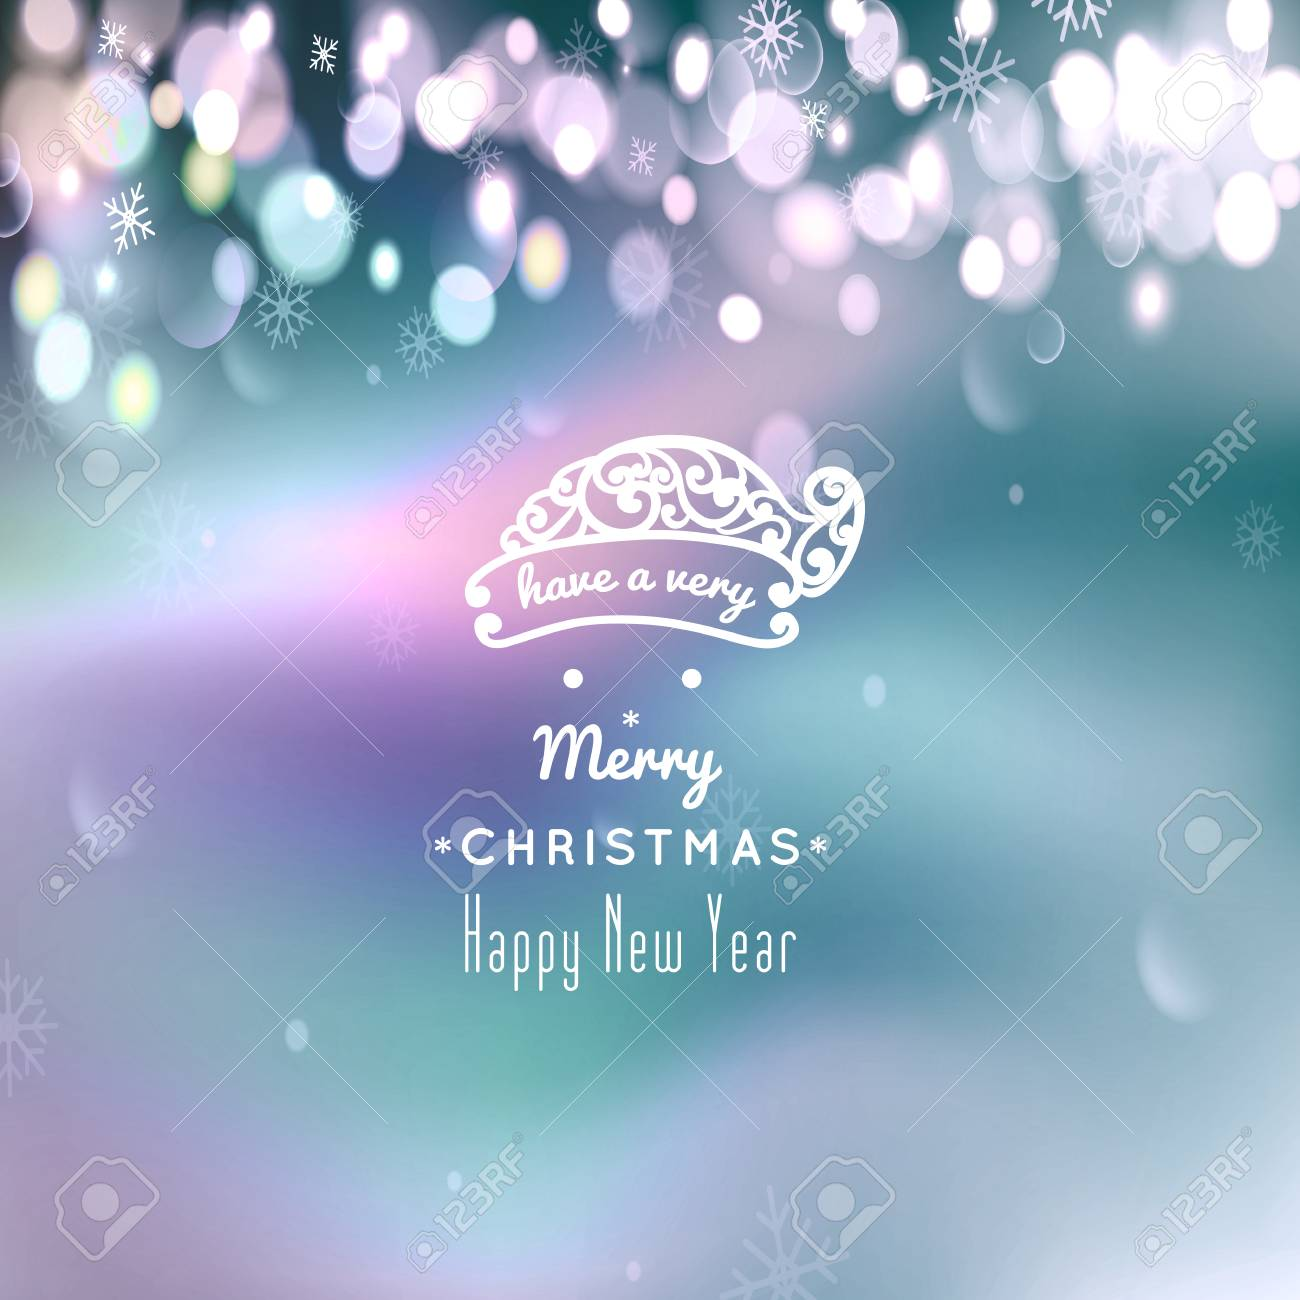 merry christmas and happy new year card christmas typographic message vector bokeh background